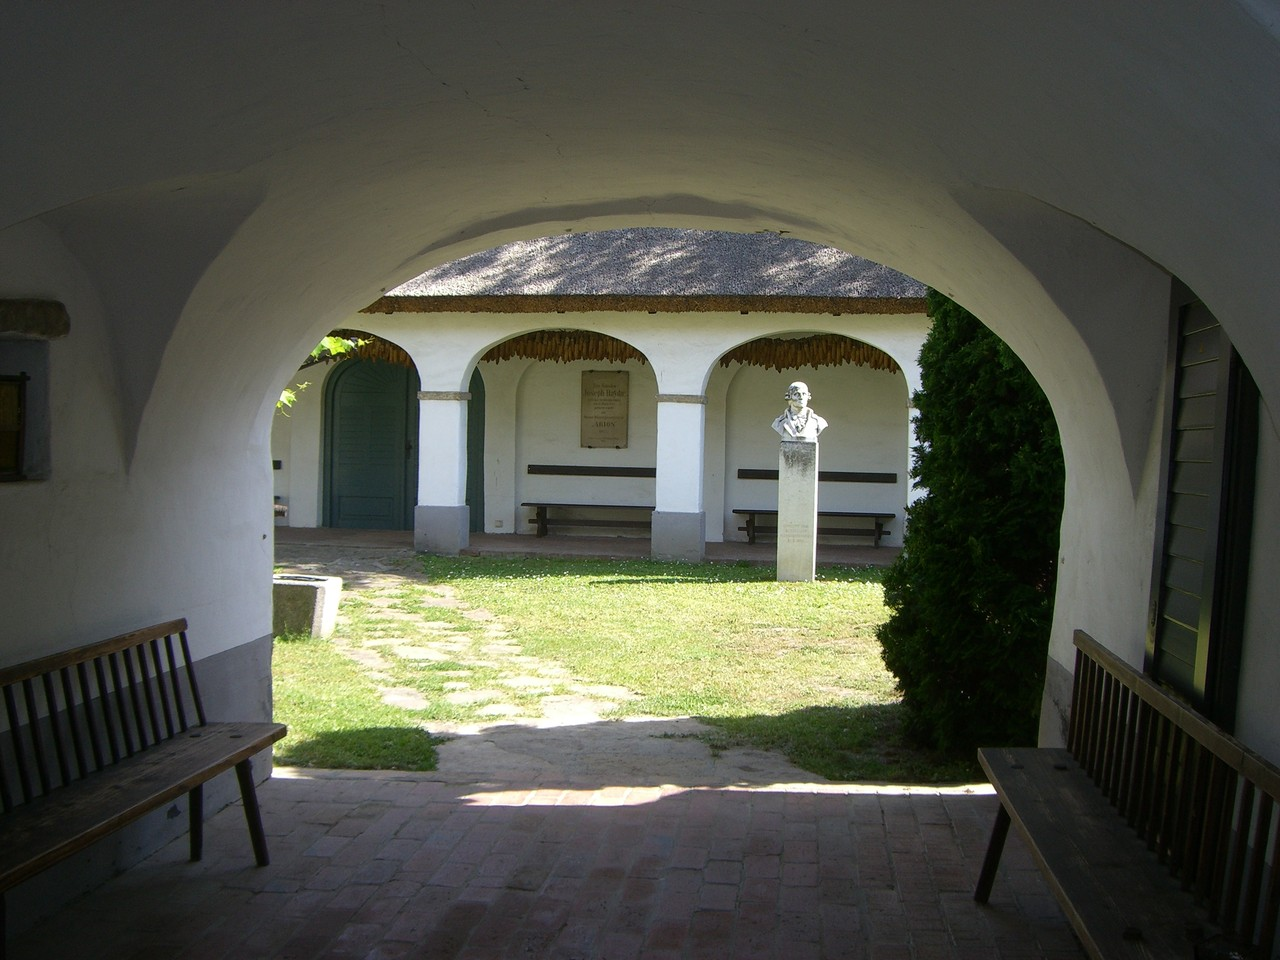 Courtyard of Joseph and Michael Haydn's birthplace in Rohrau, Lower Austria